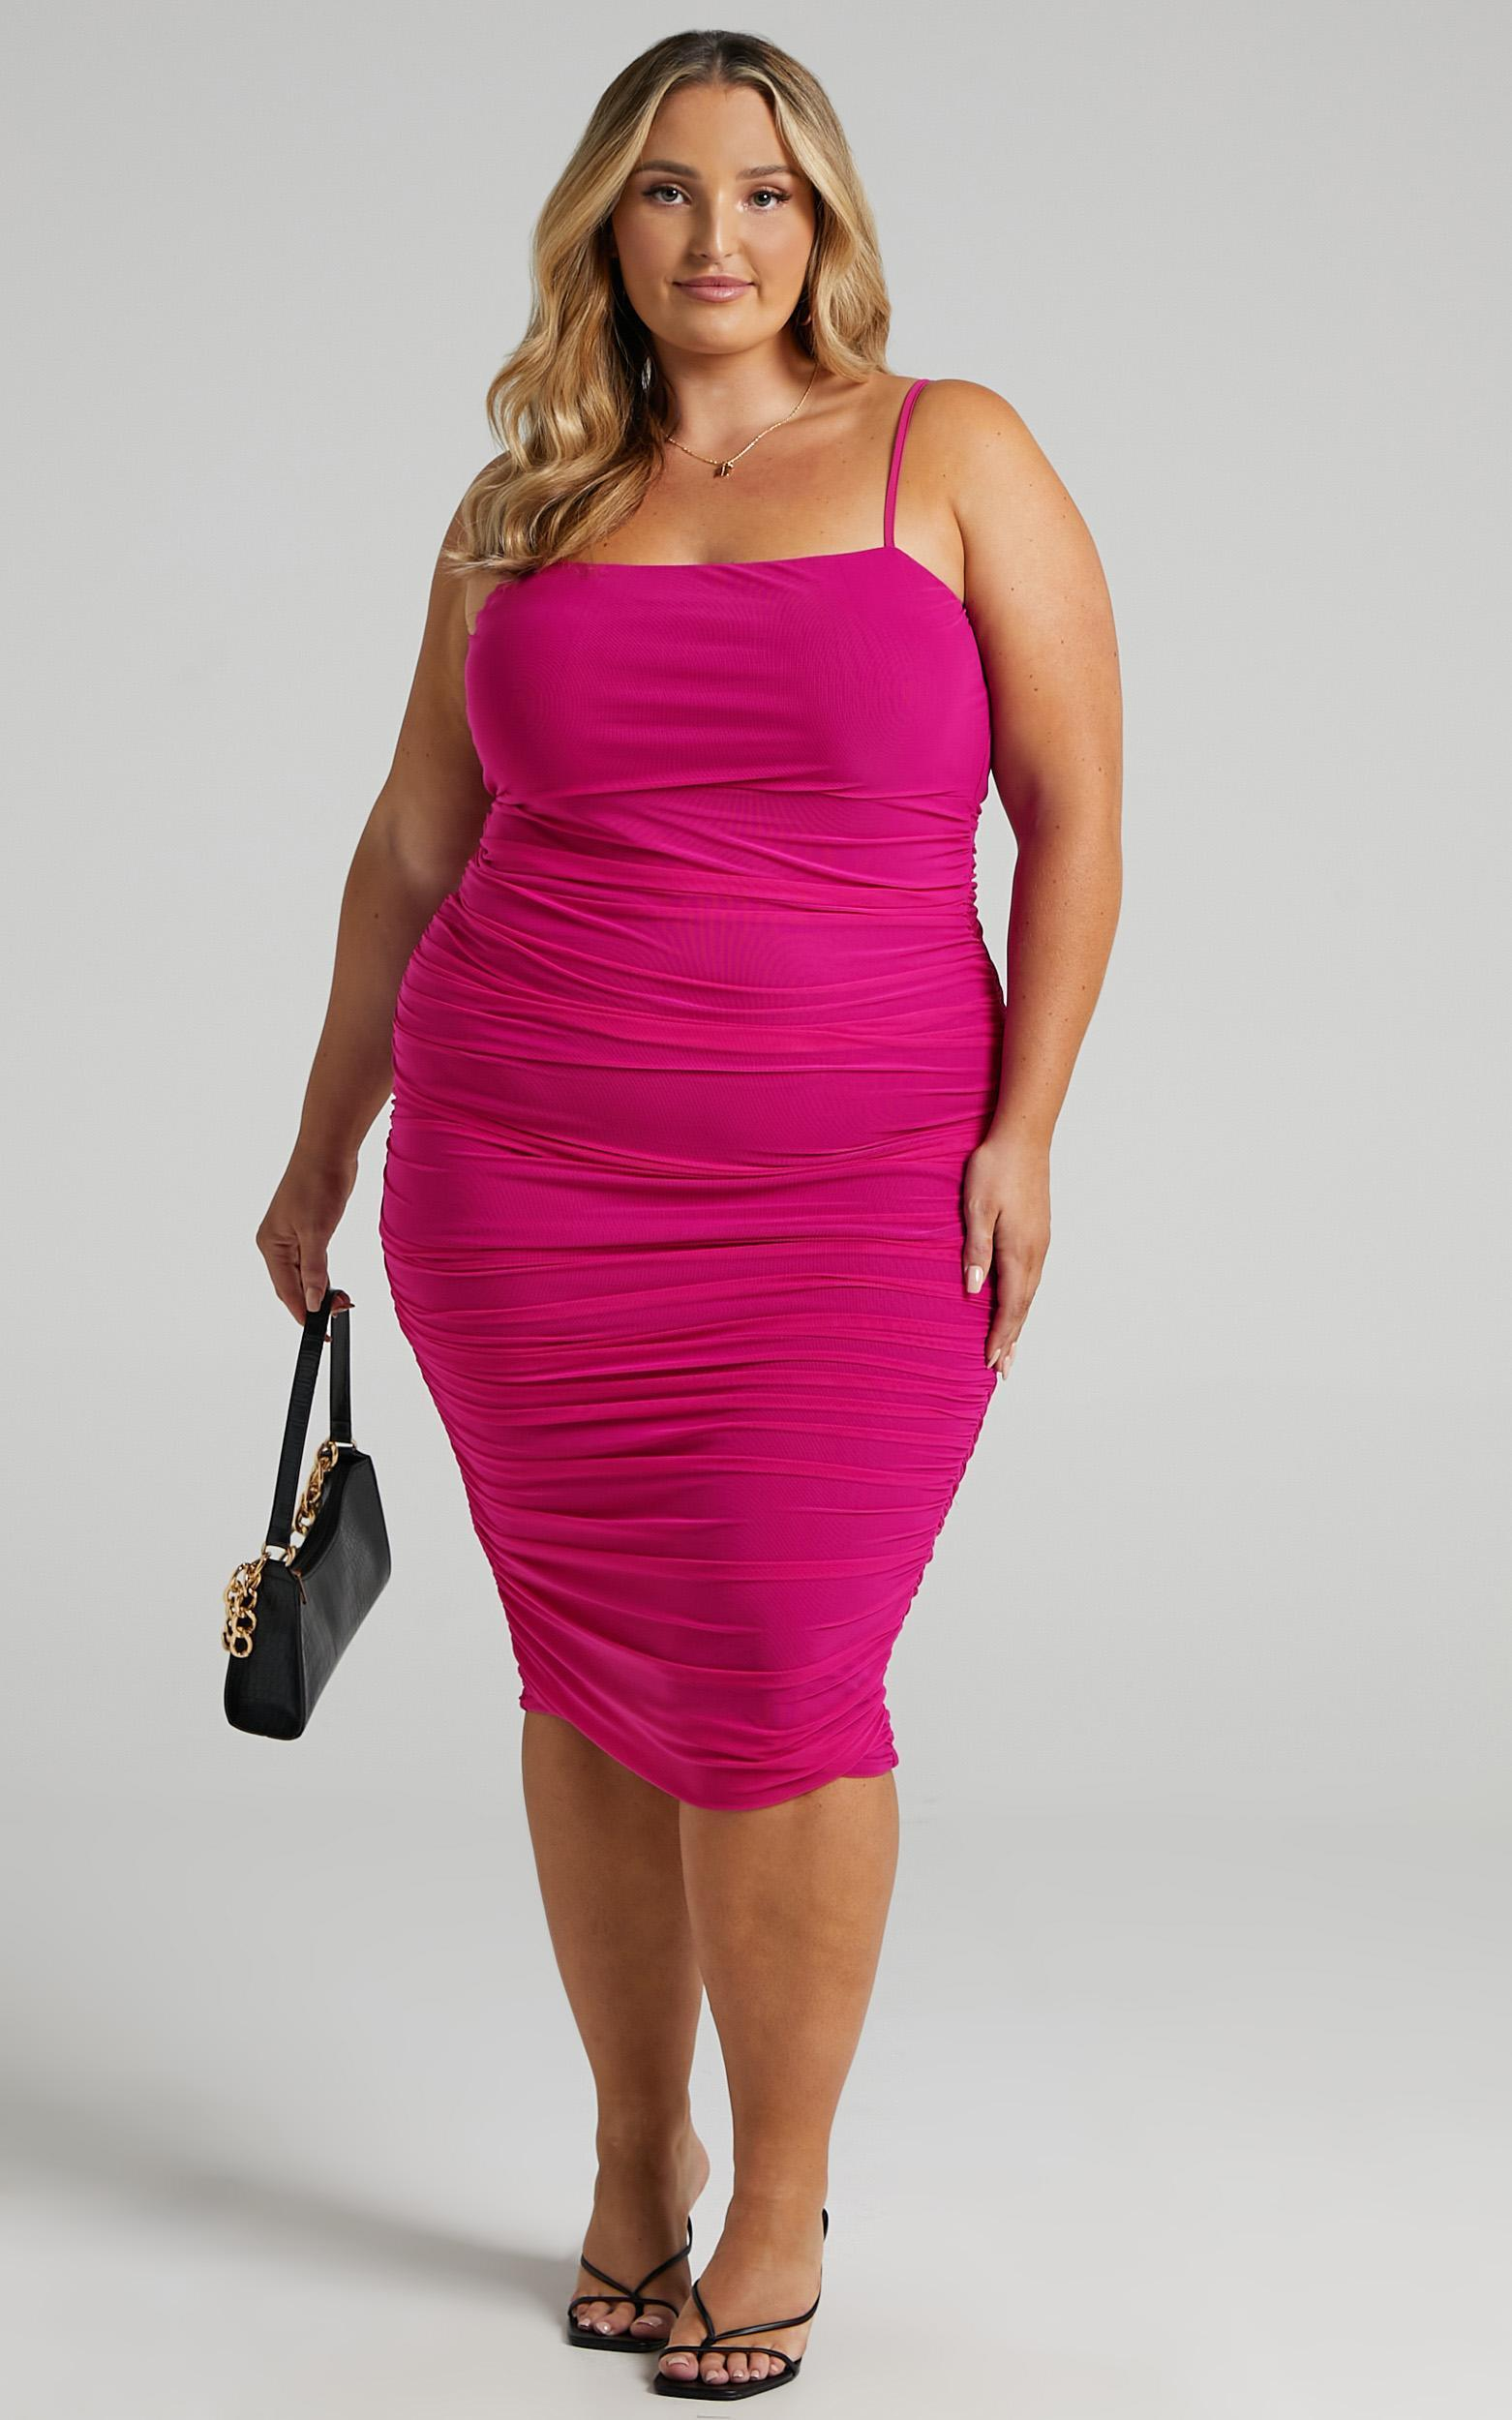 Coming For You Dress in Hot Pink Mesh - 4 (XXS), PNK11, hi-res image number null